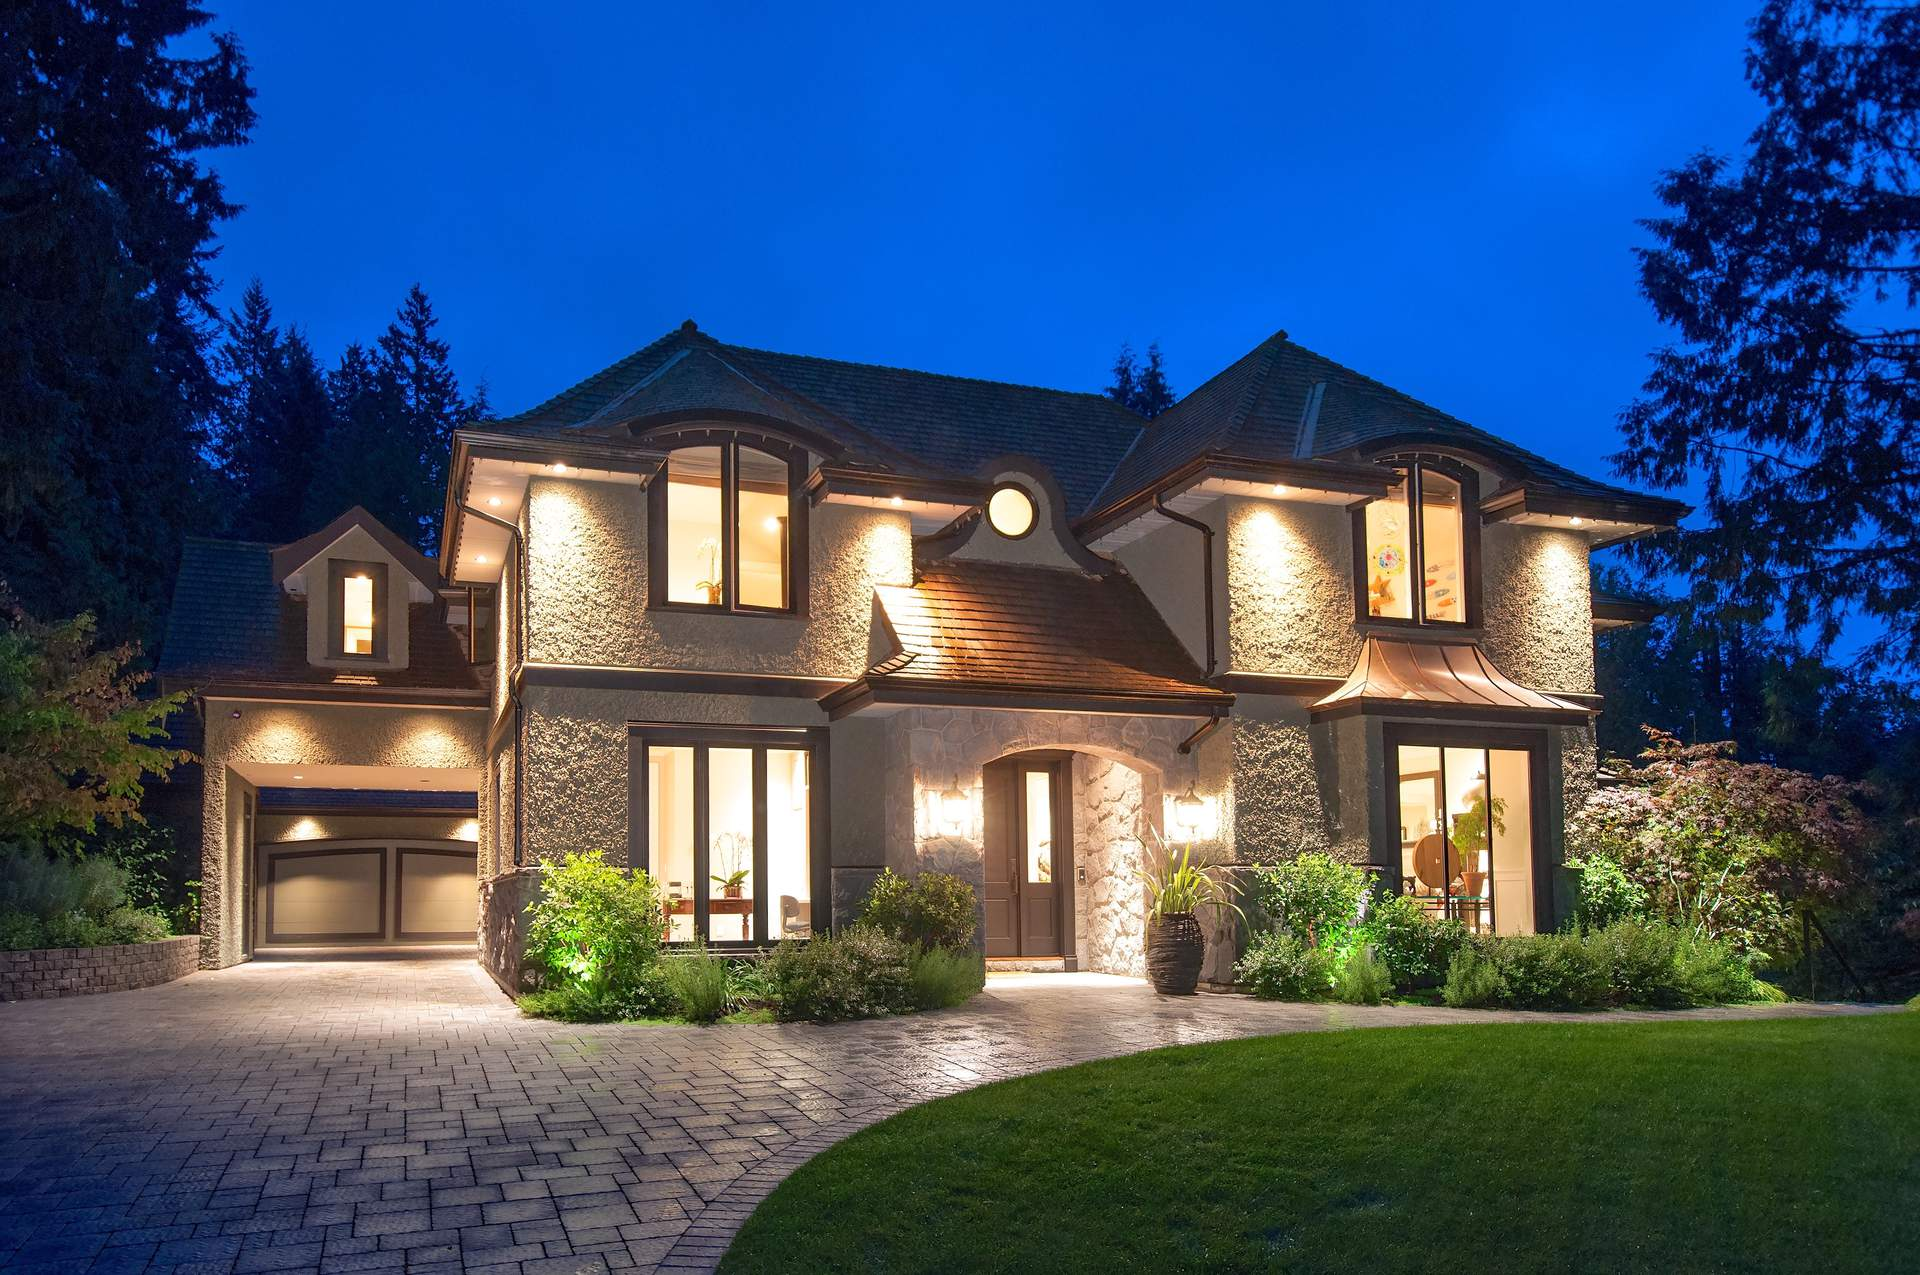 vancouver bc luxury homes trend home design and decor